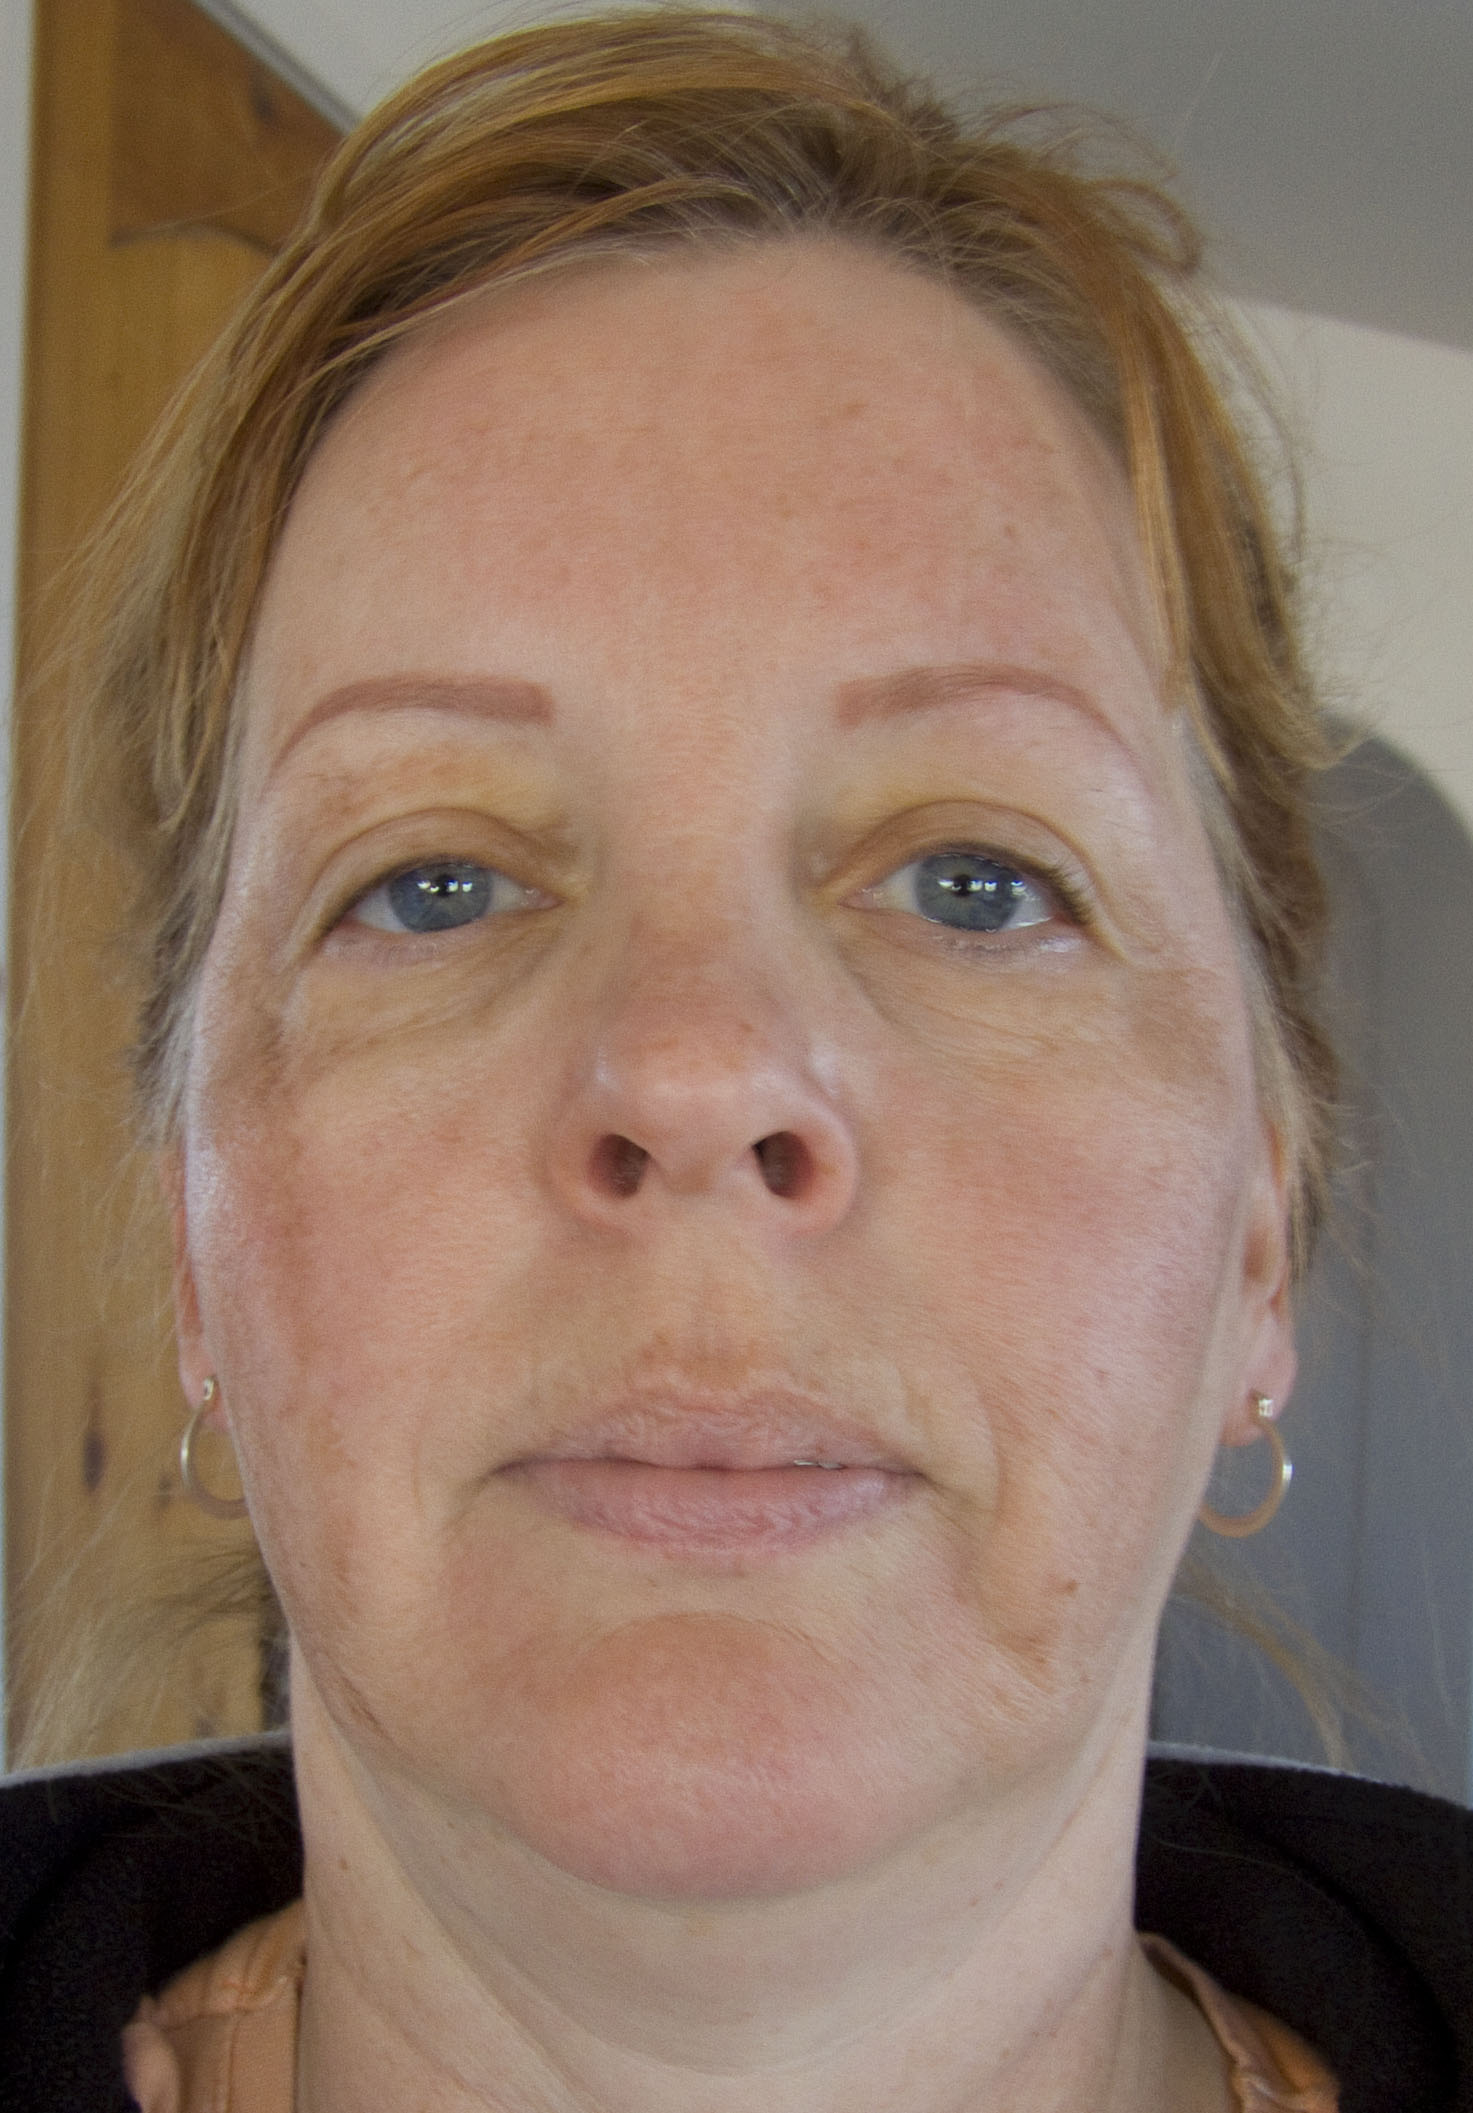 Full Face on Day Two of Chemical Peel